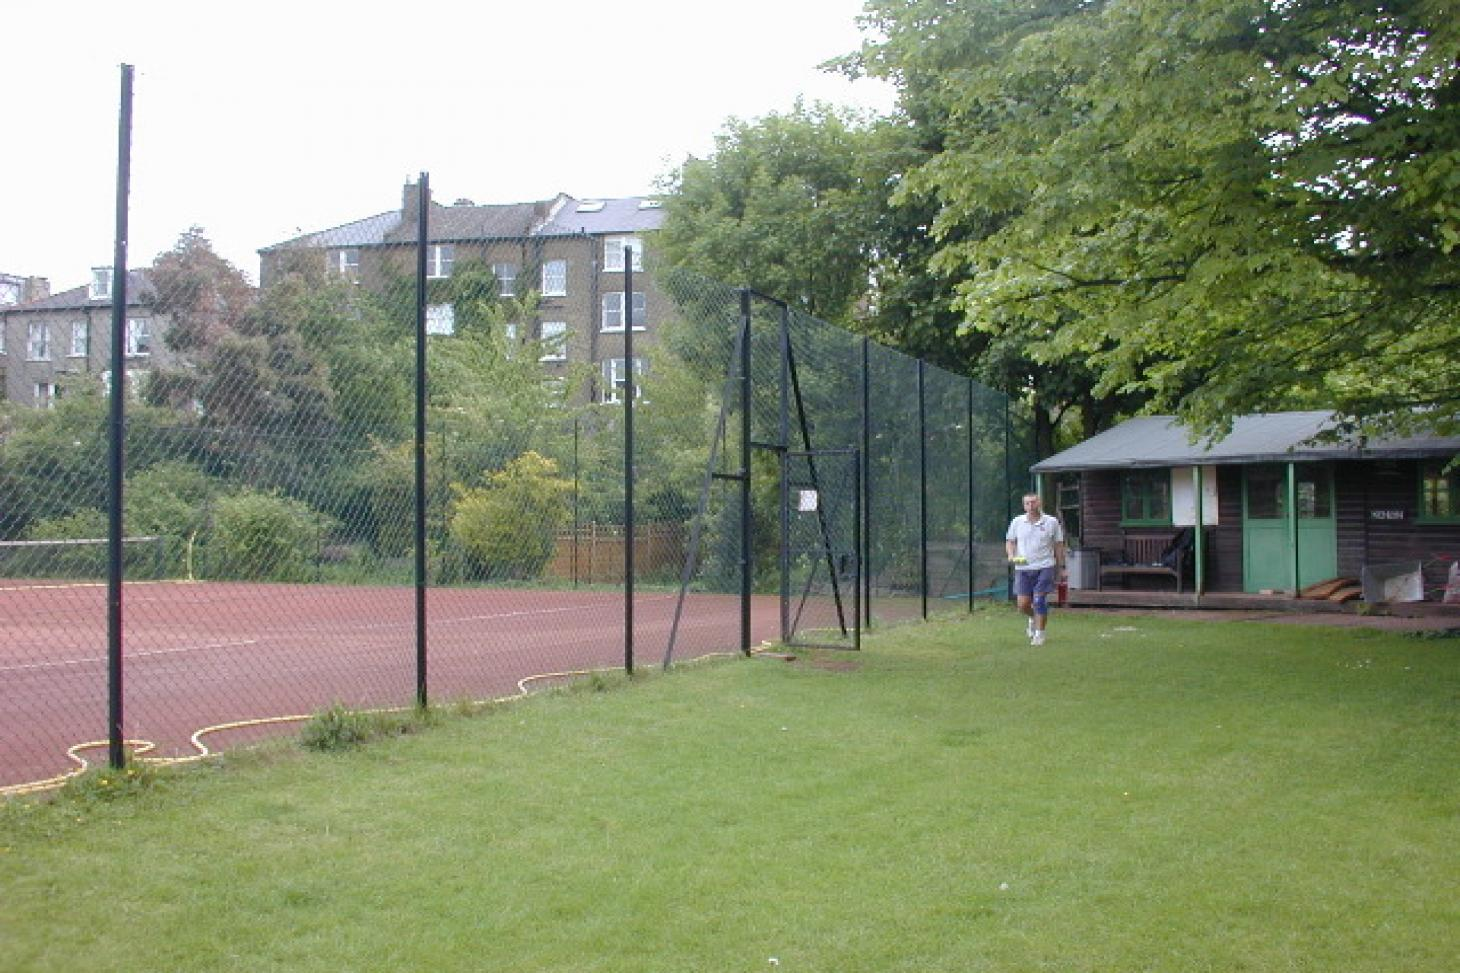 Kenlyn Lawn Tennis Club Outdoor | Clay tennis court